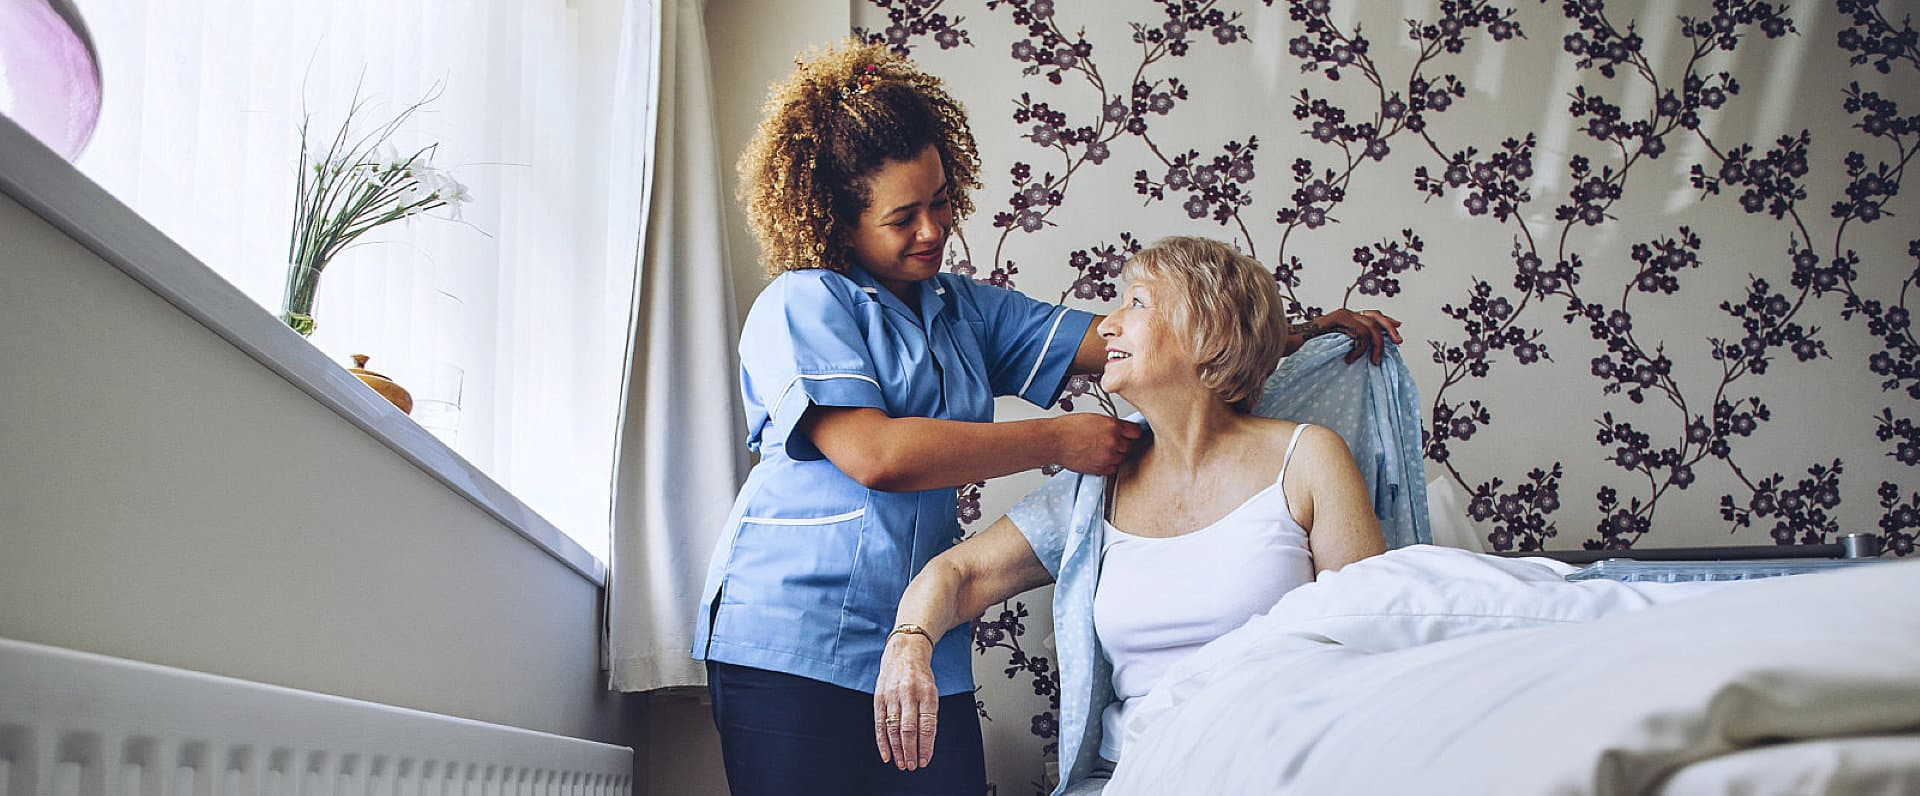 caregiver helping senior woman to change clothes